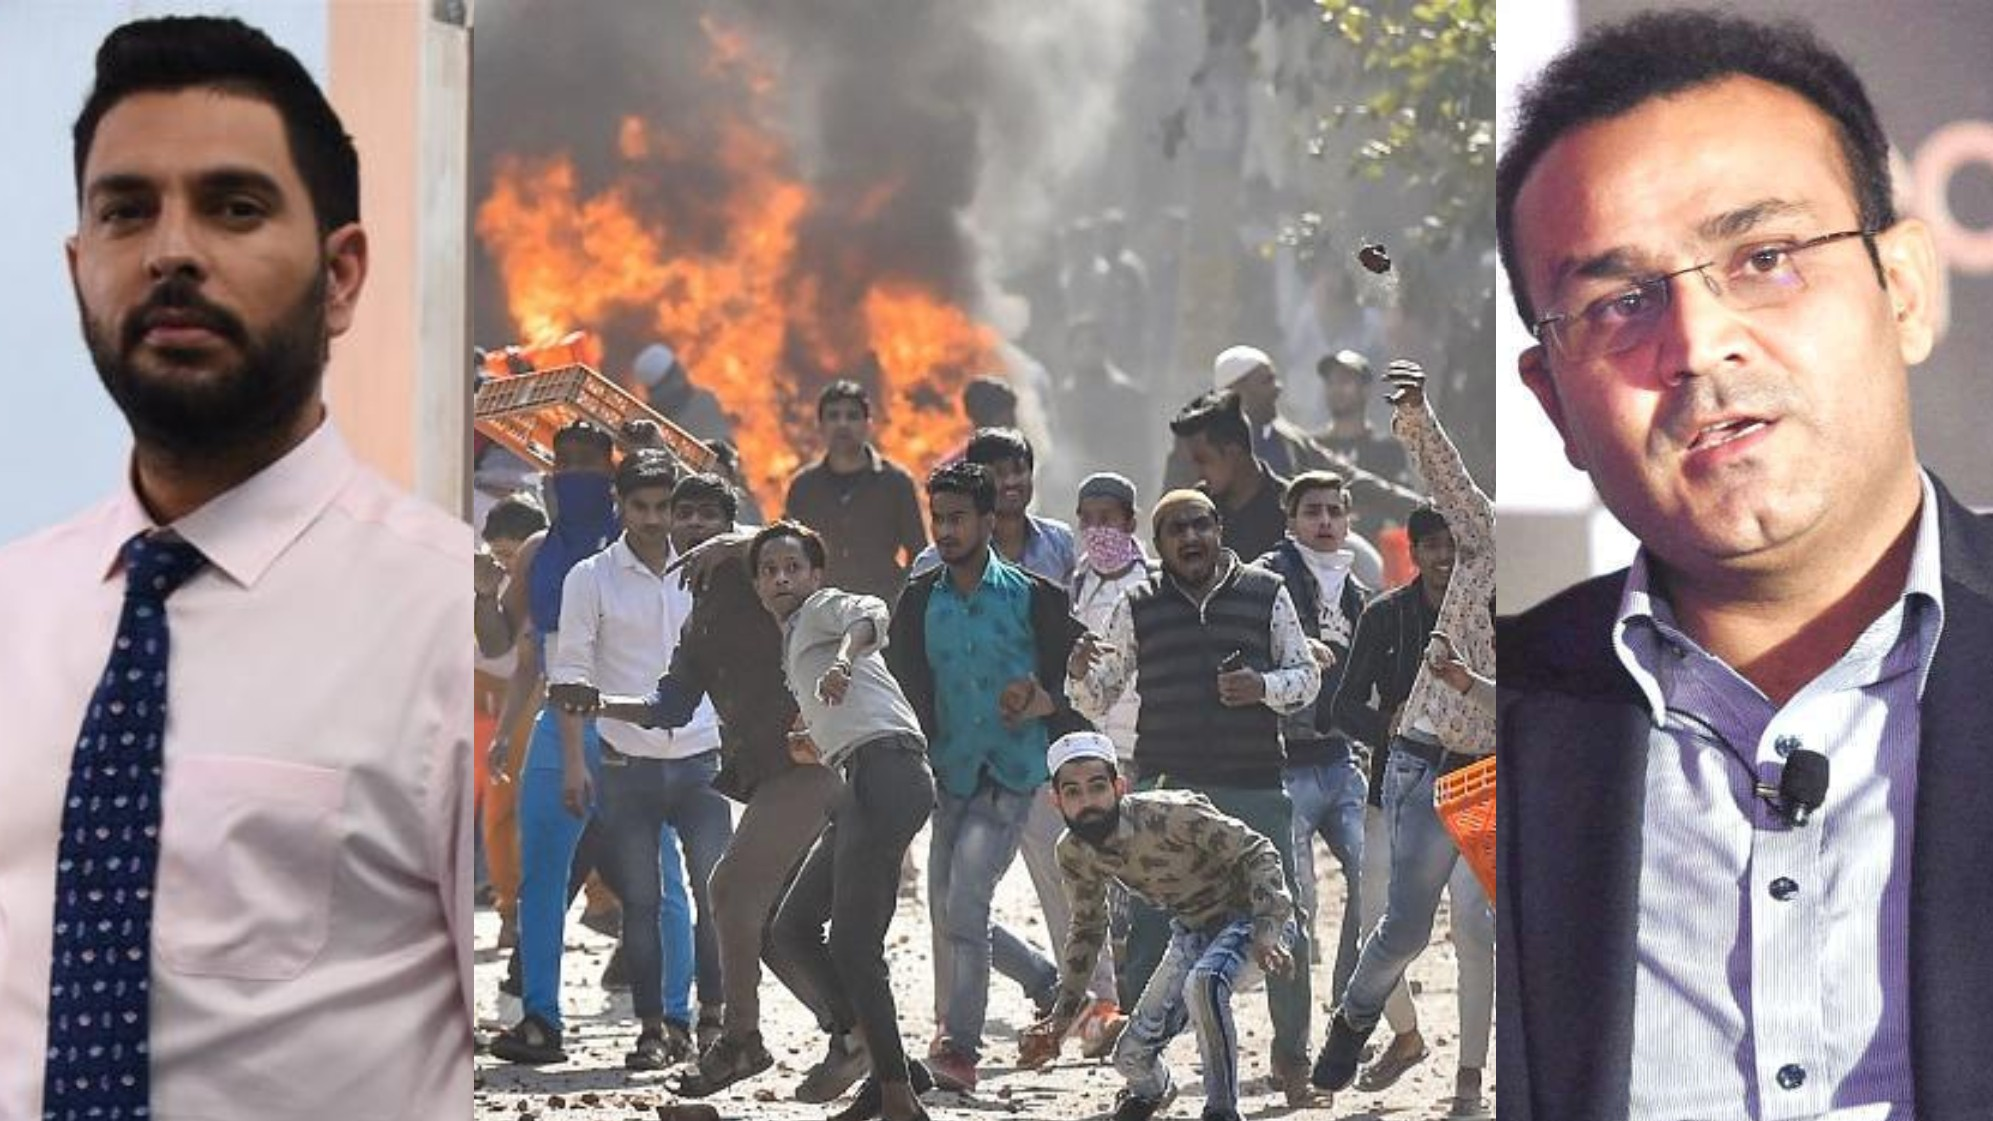 Irfan Pathan, Virender Sehwag and Yuvraj Singh call for peace in Delhi after intense riots